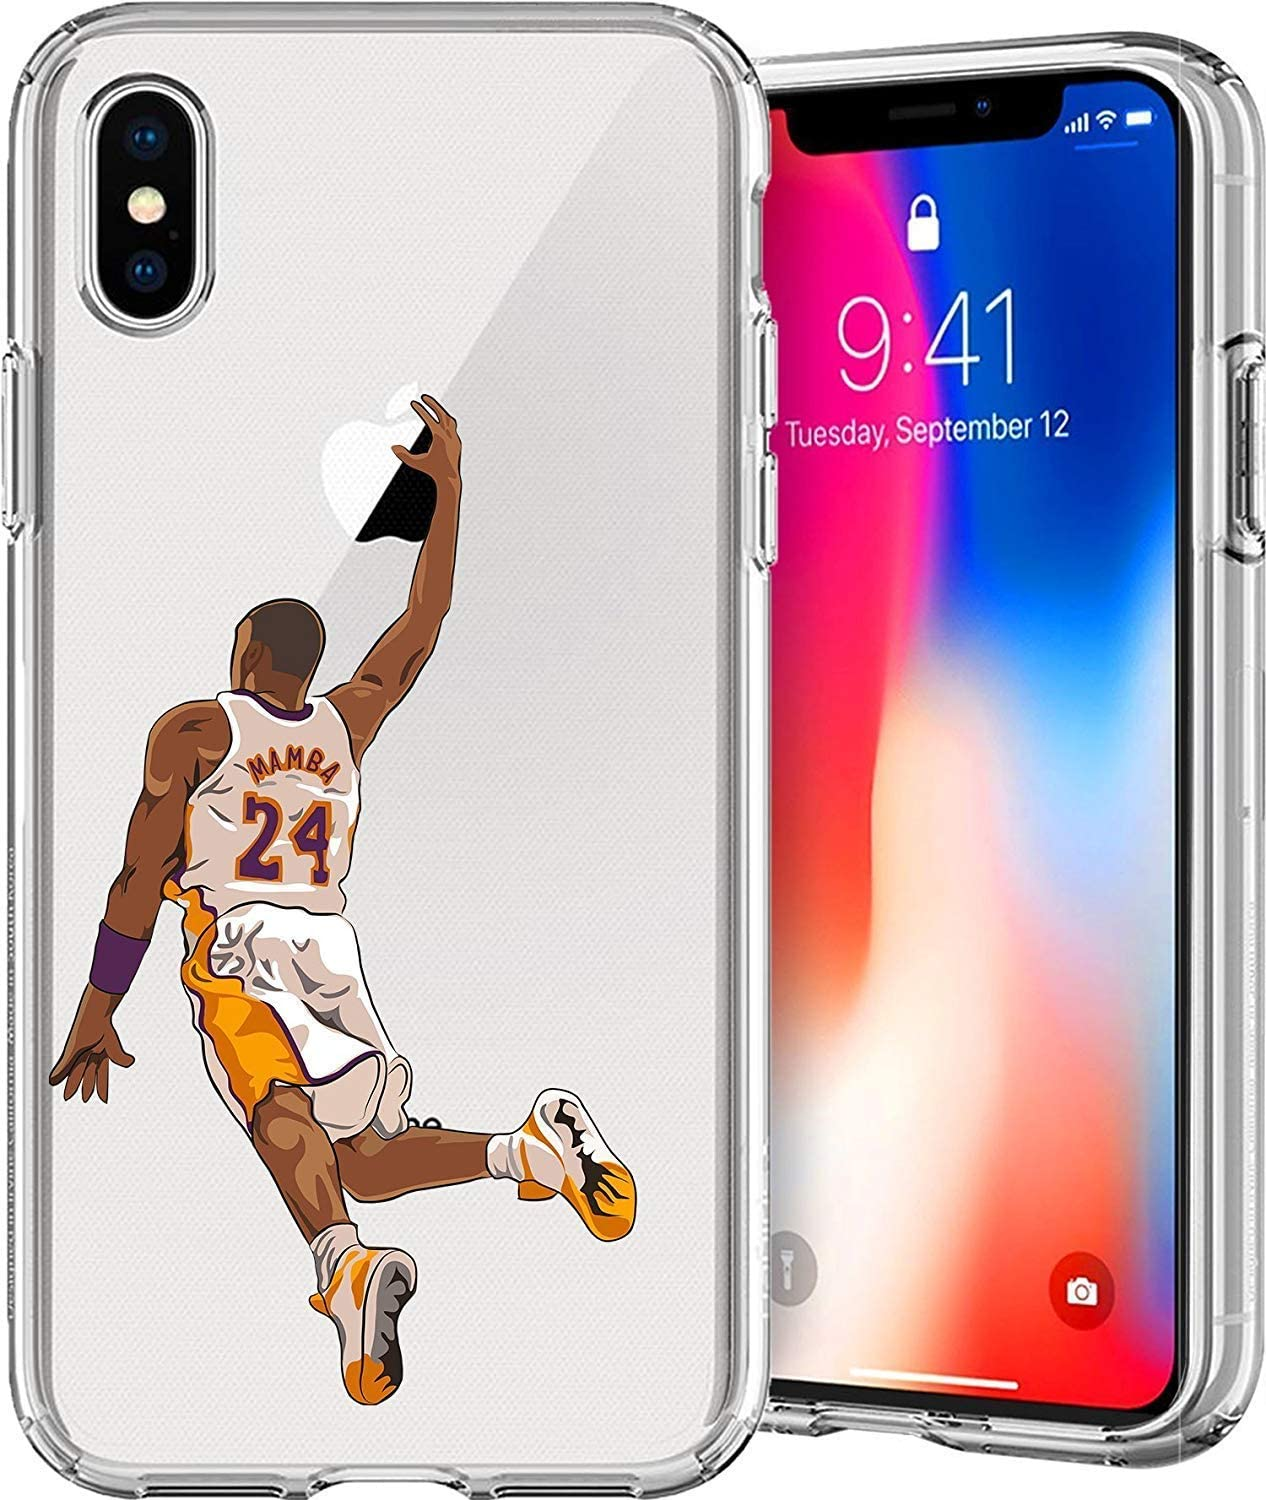 ETERINS Cases Ultra Slim [Crystal Clear] [Hardwood Series] Soft Transparent TPU Case Cover - Mamba for iPhone XR(6.1)